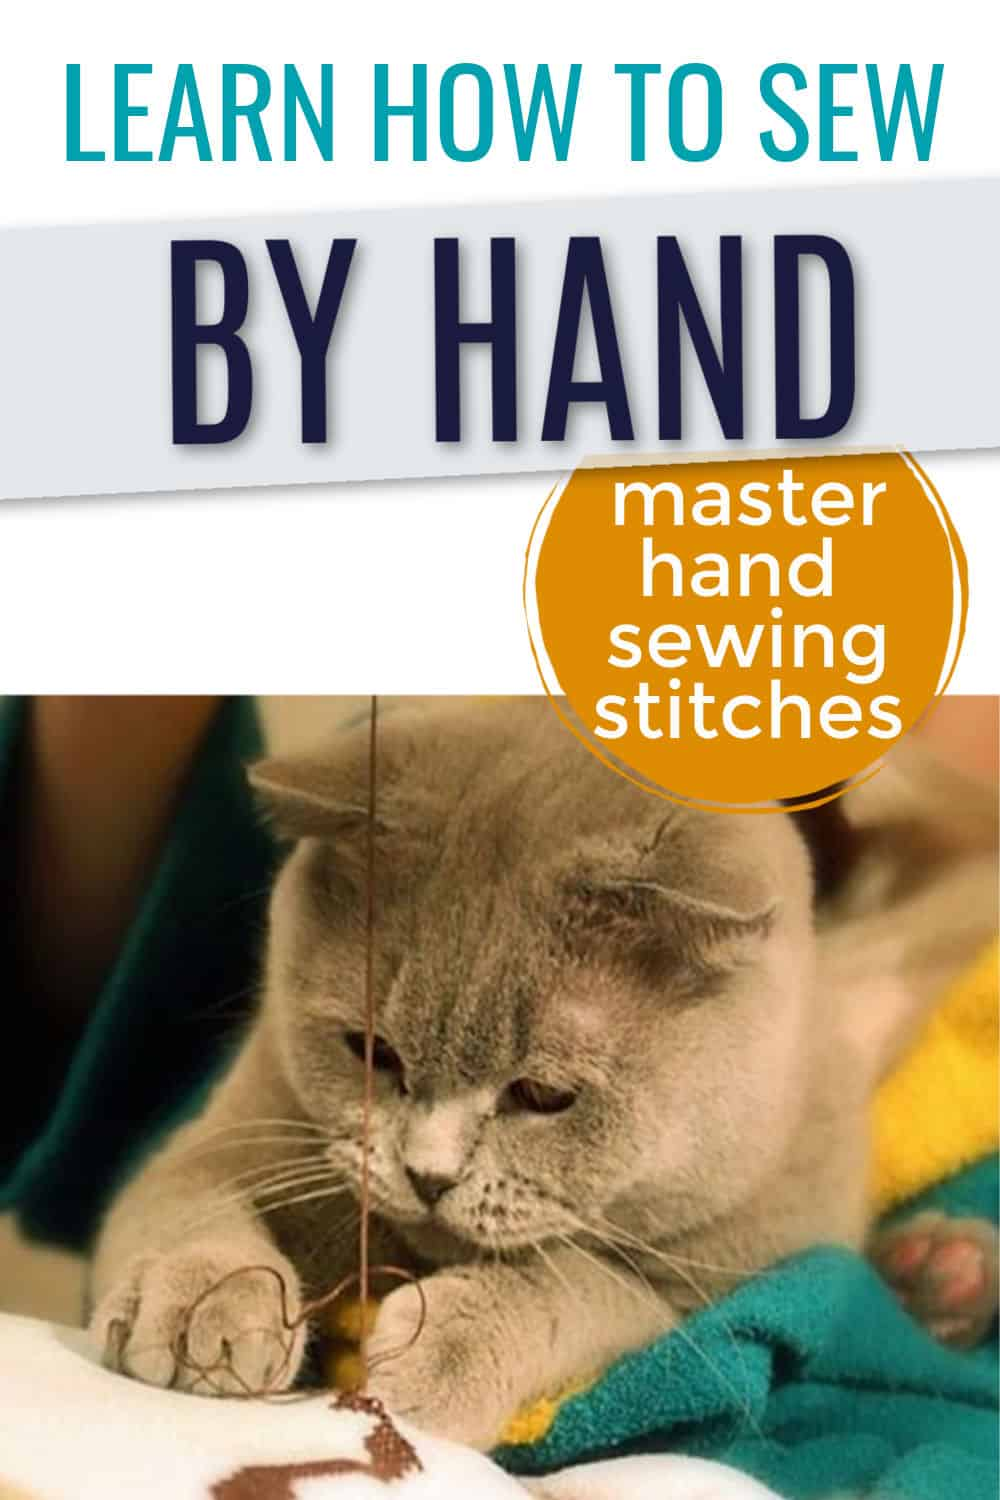 learn how to sew by handf